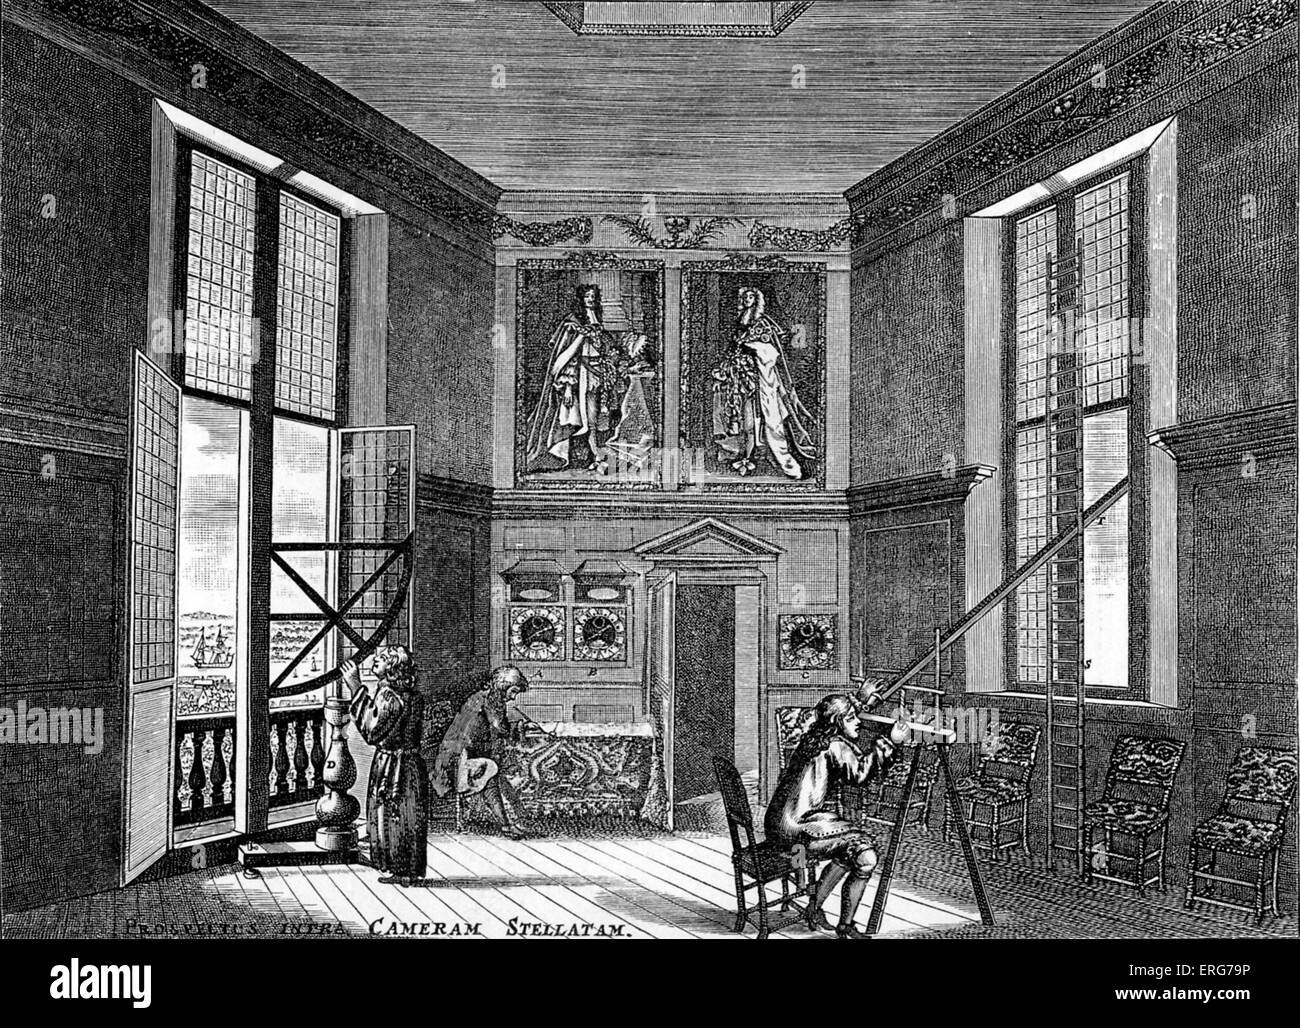 Old Room Black And White Stock Photos Images Alamy Book Wiring Observation The Observing Greenwich After An Engraving Created Under Direction Of